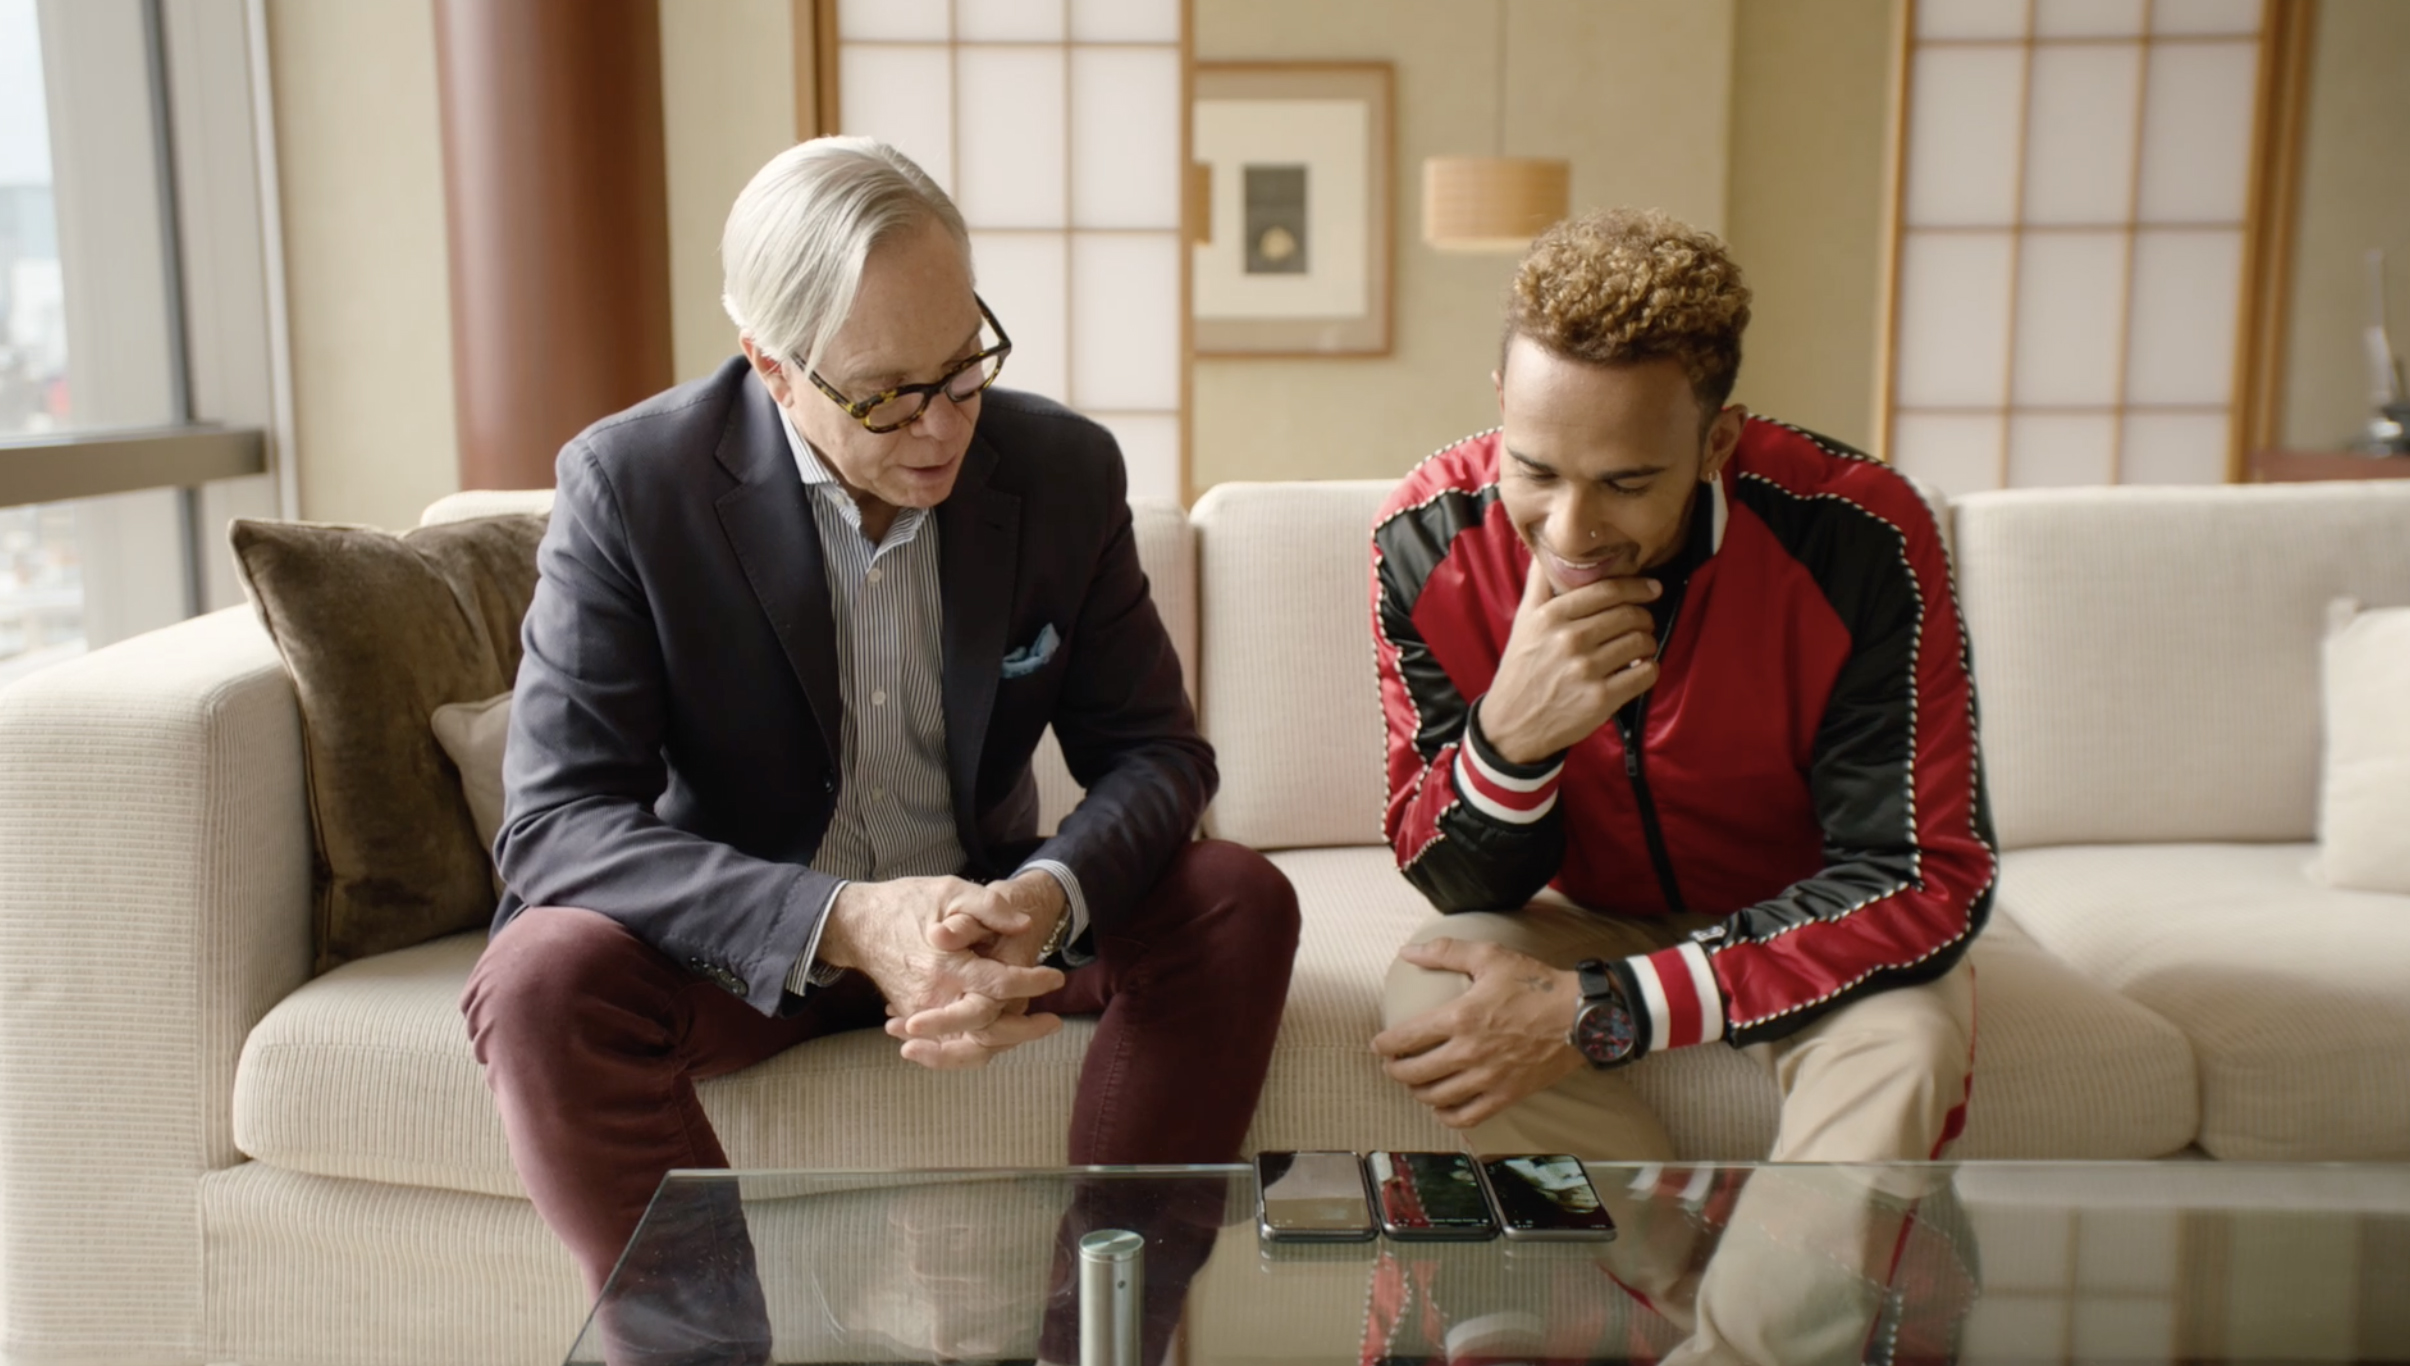 Tommy X Lewis - Tommy Hilfiger and Formula 1 legend Lewis Hamilton SideFlix-ing together for the first time backstage at the 2018 Fall Fashion Week show.